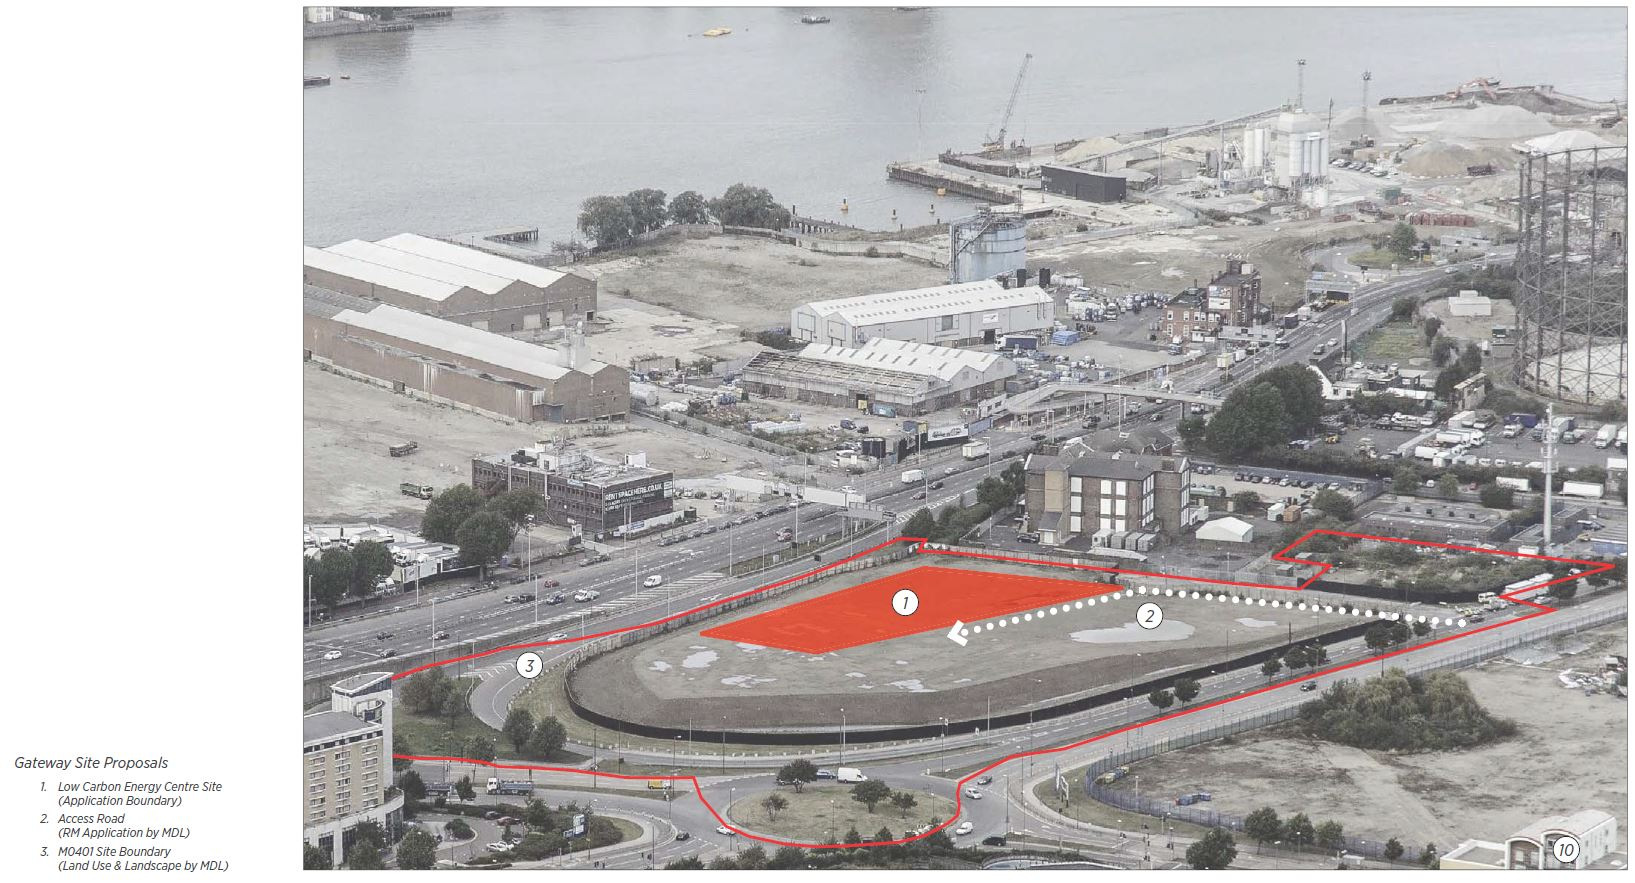 Proposed site of Energy Centre on plot M0401, adjacent to Blackwall Tunnel Approach [C.F. Møller]